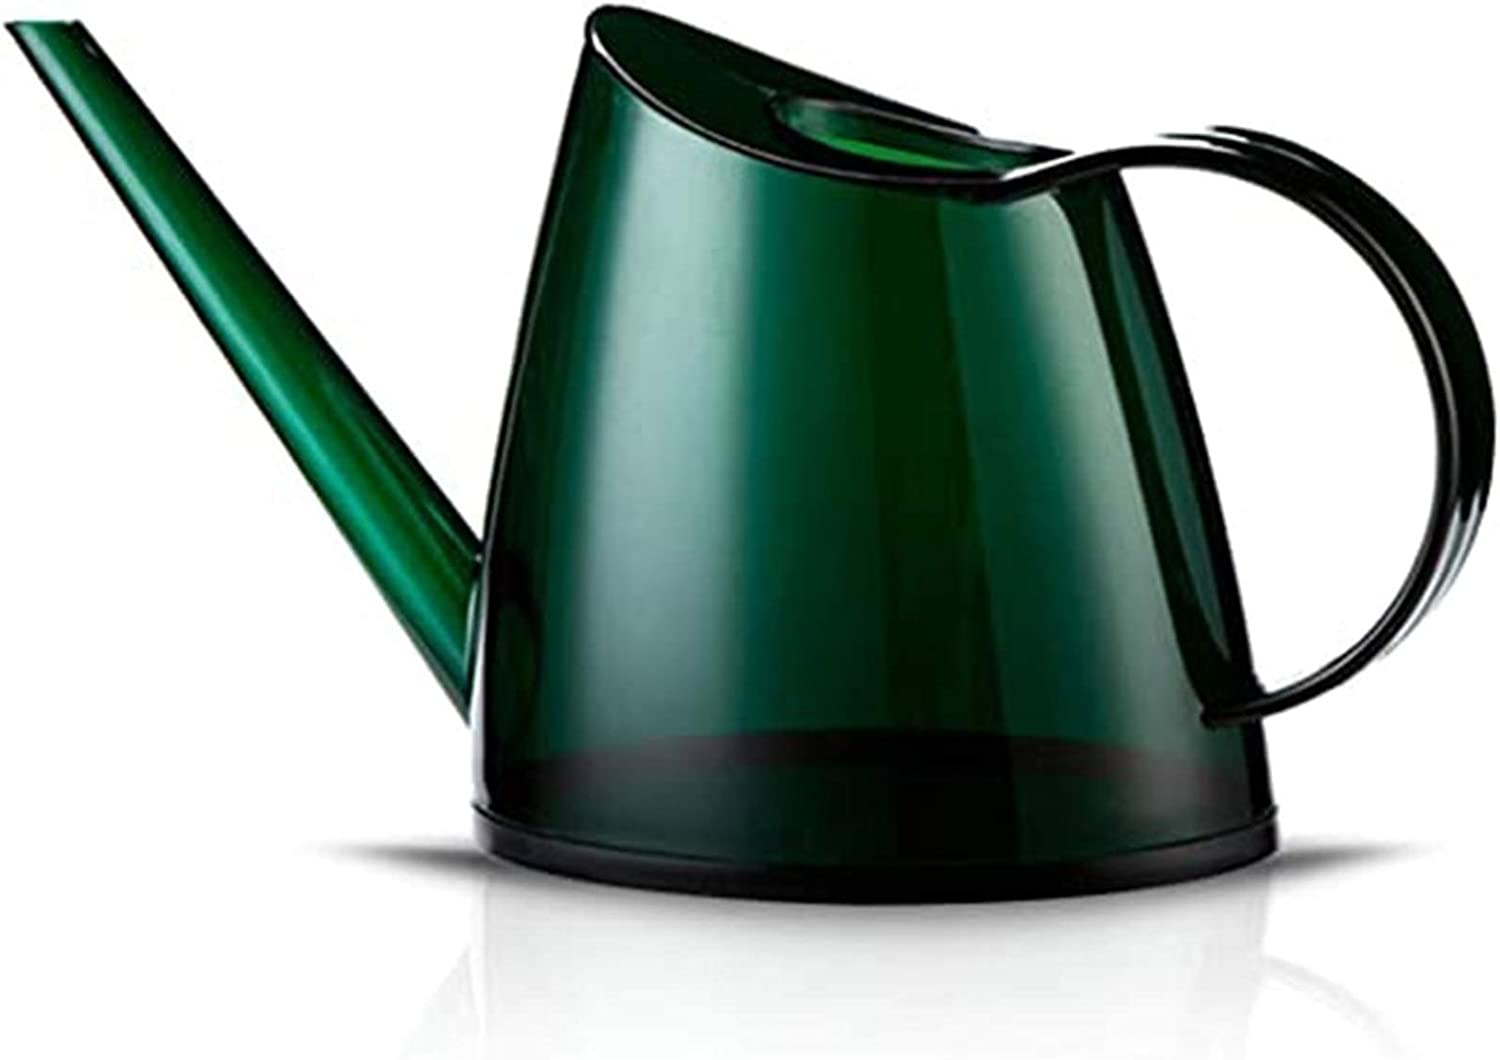 WGGTX Watering can Garden Flowers Indoor Dealing full price reduction Small Opening large release sale C Modern